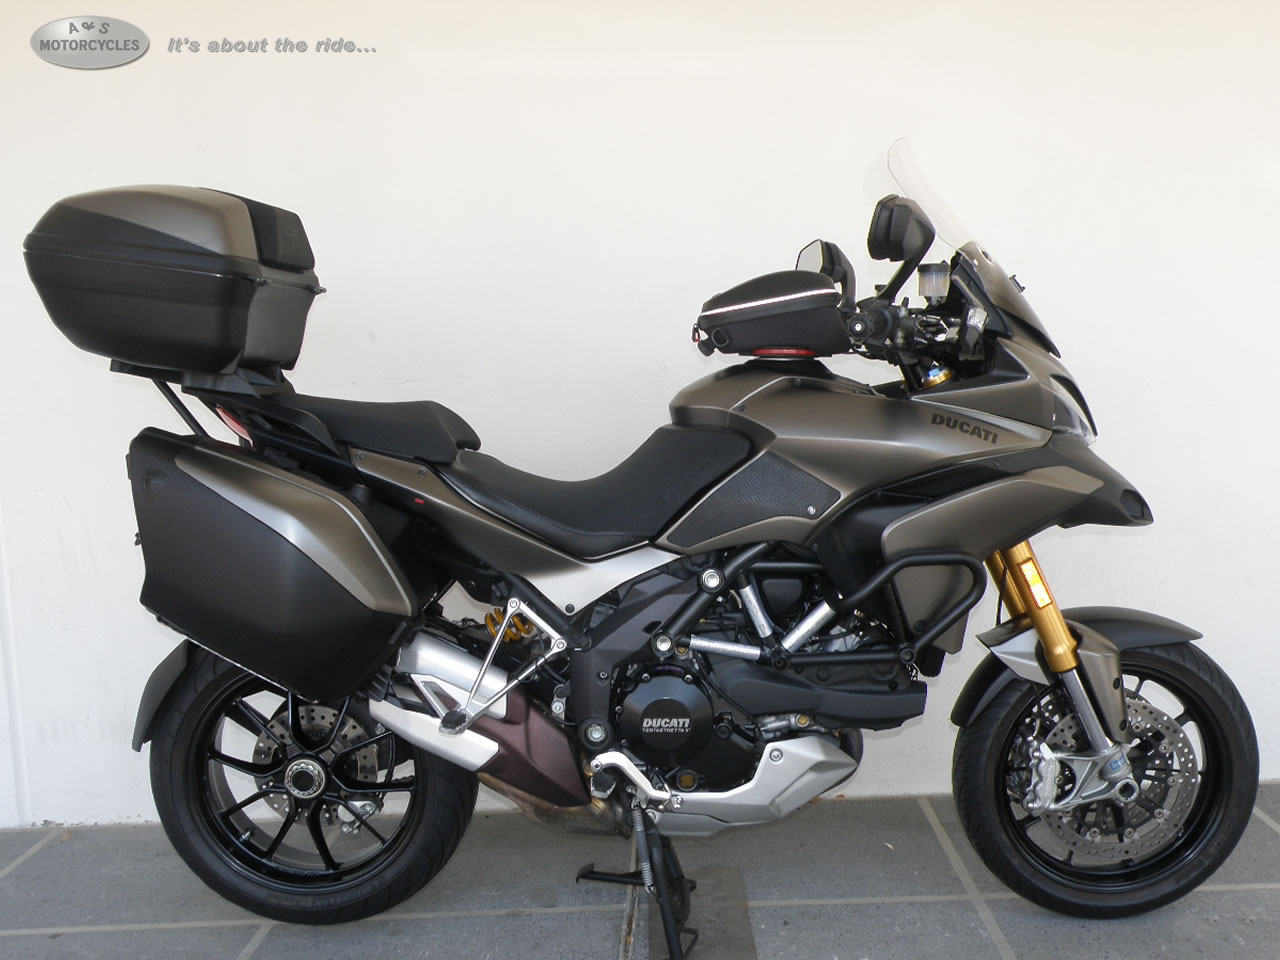 2012 Ducati Multistrada 1200S Touring, motorcycle listing